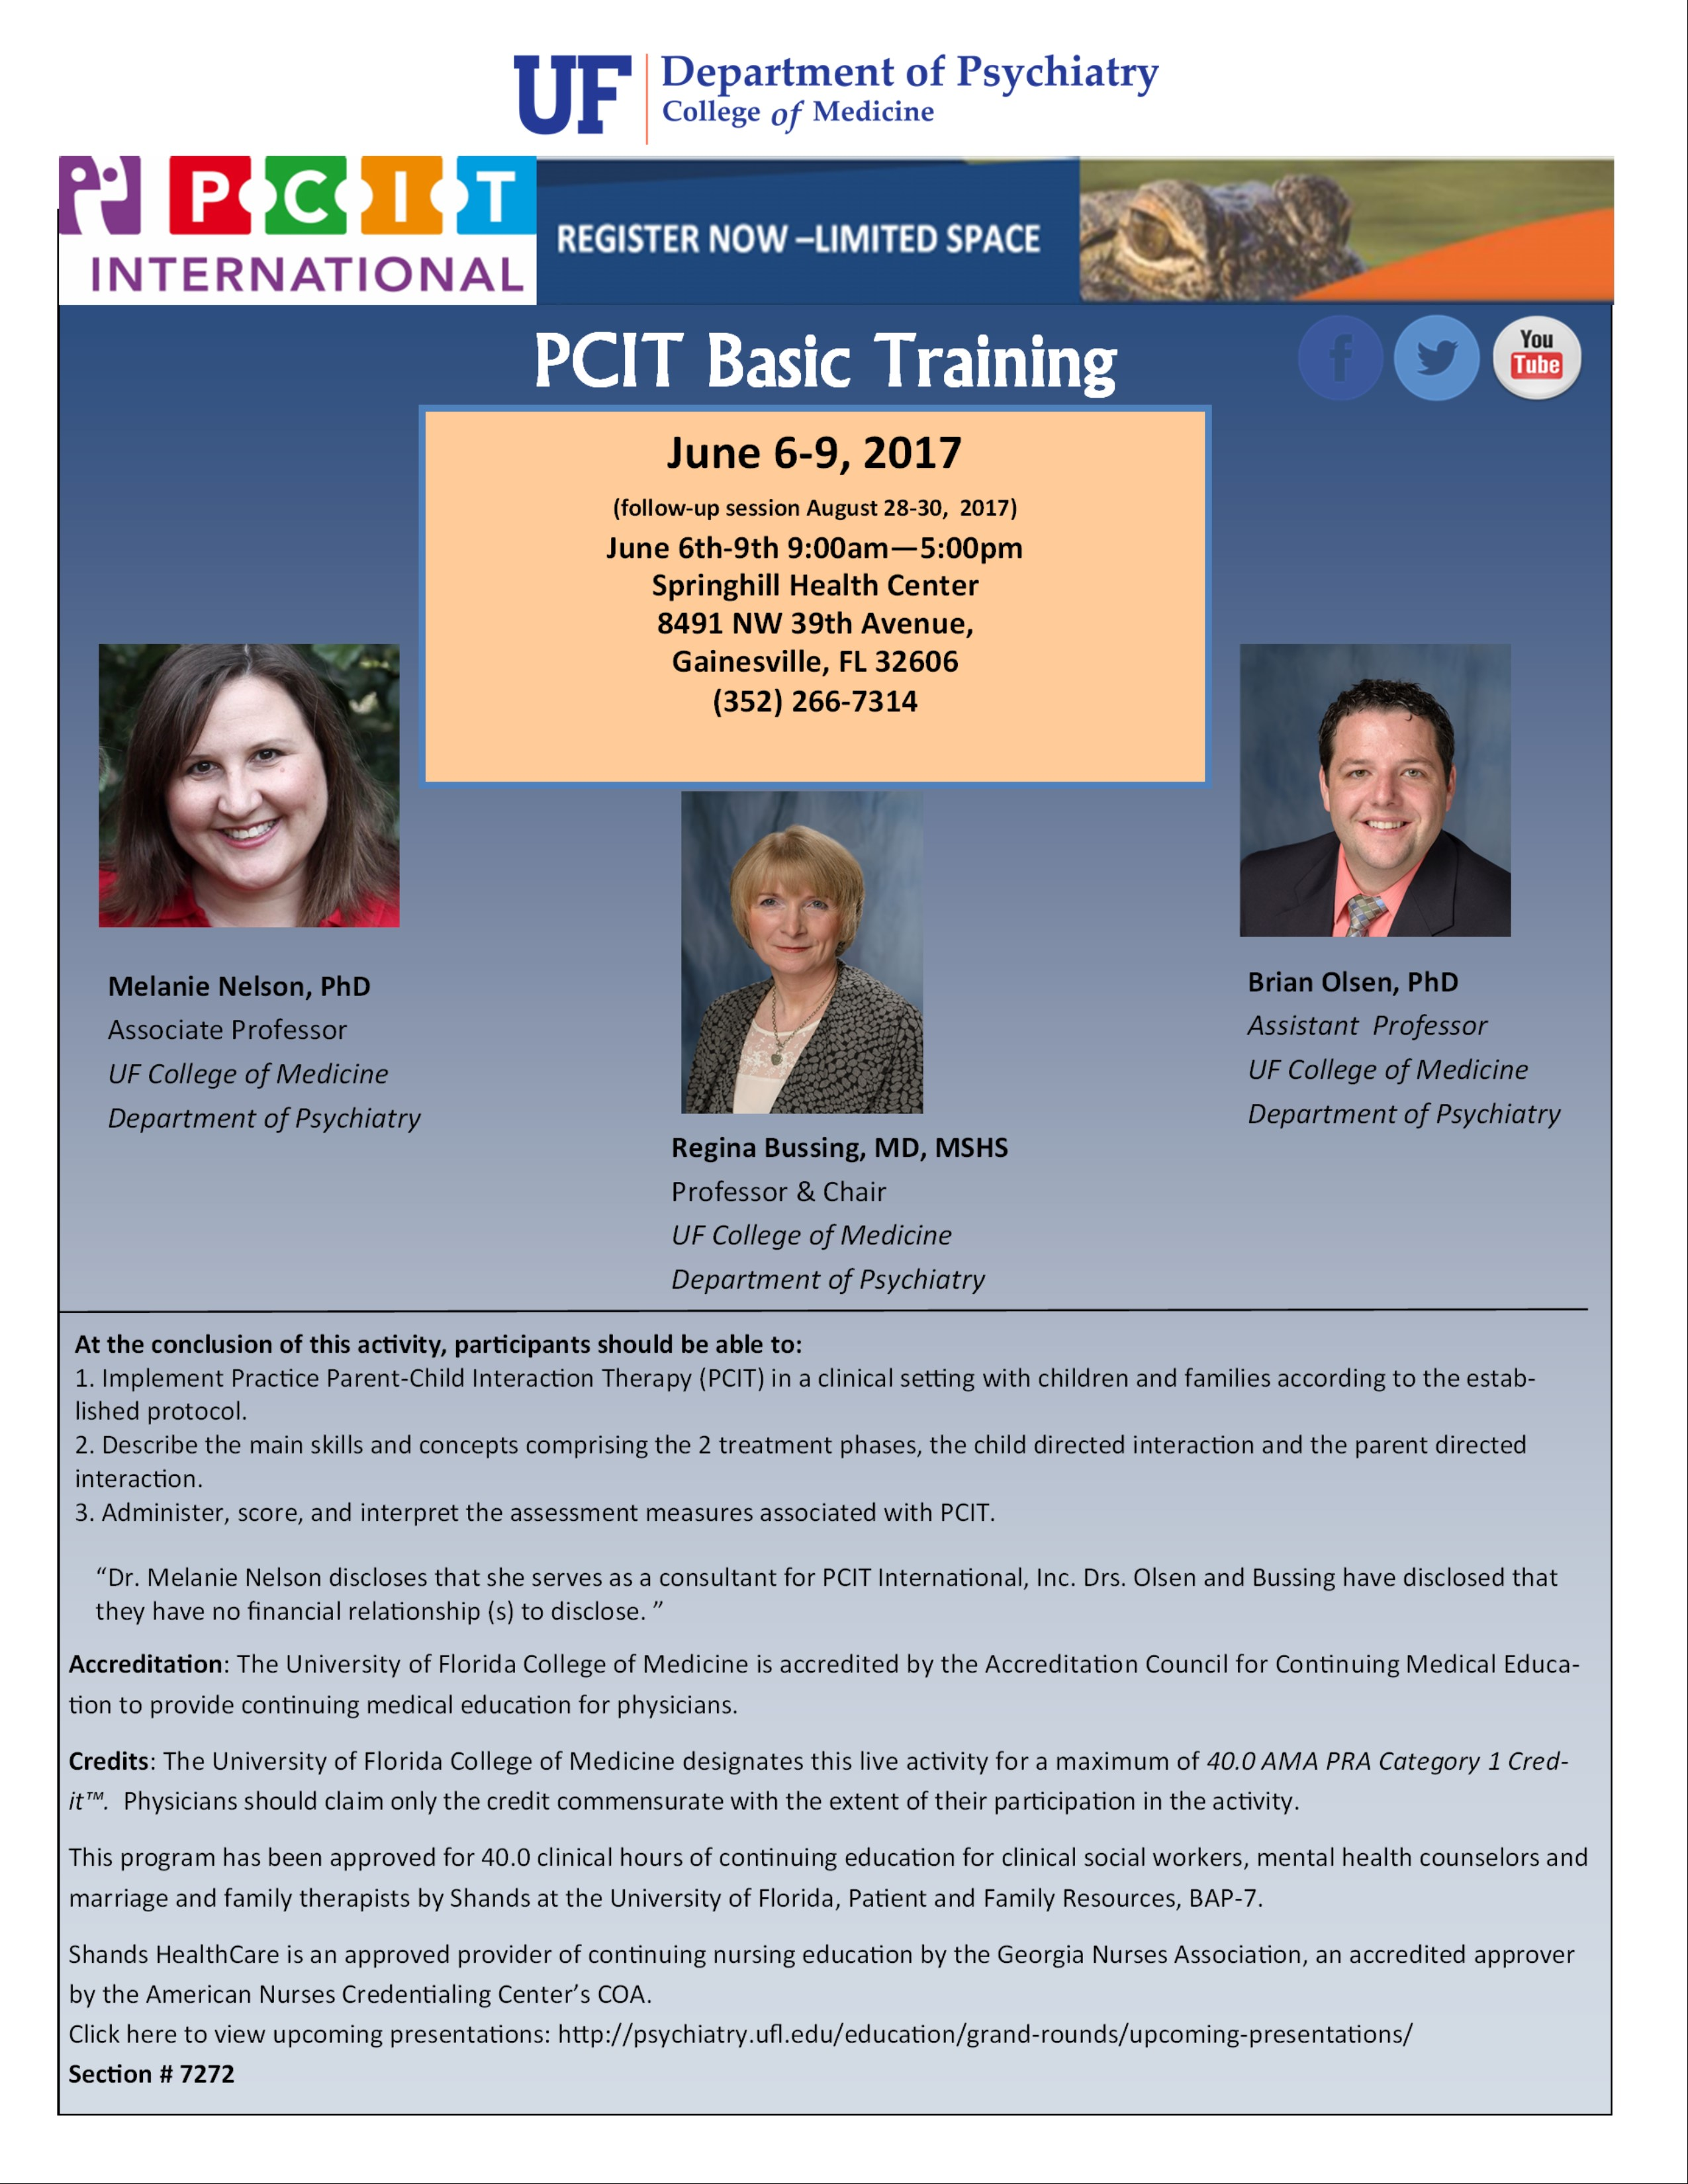 PCIT CME for June